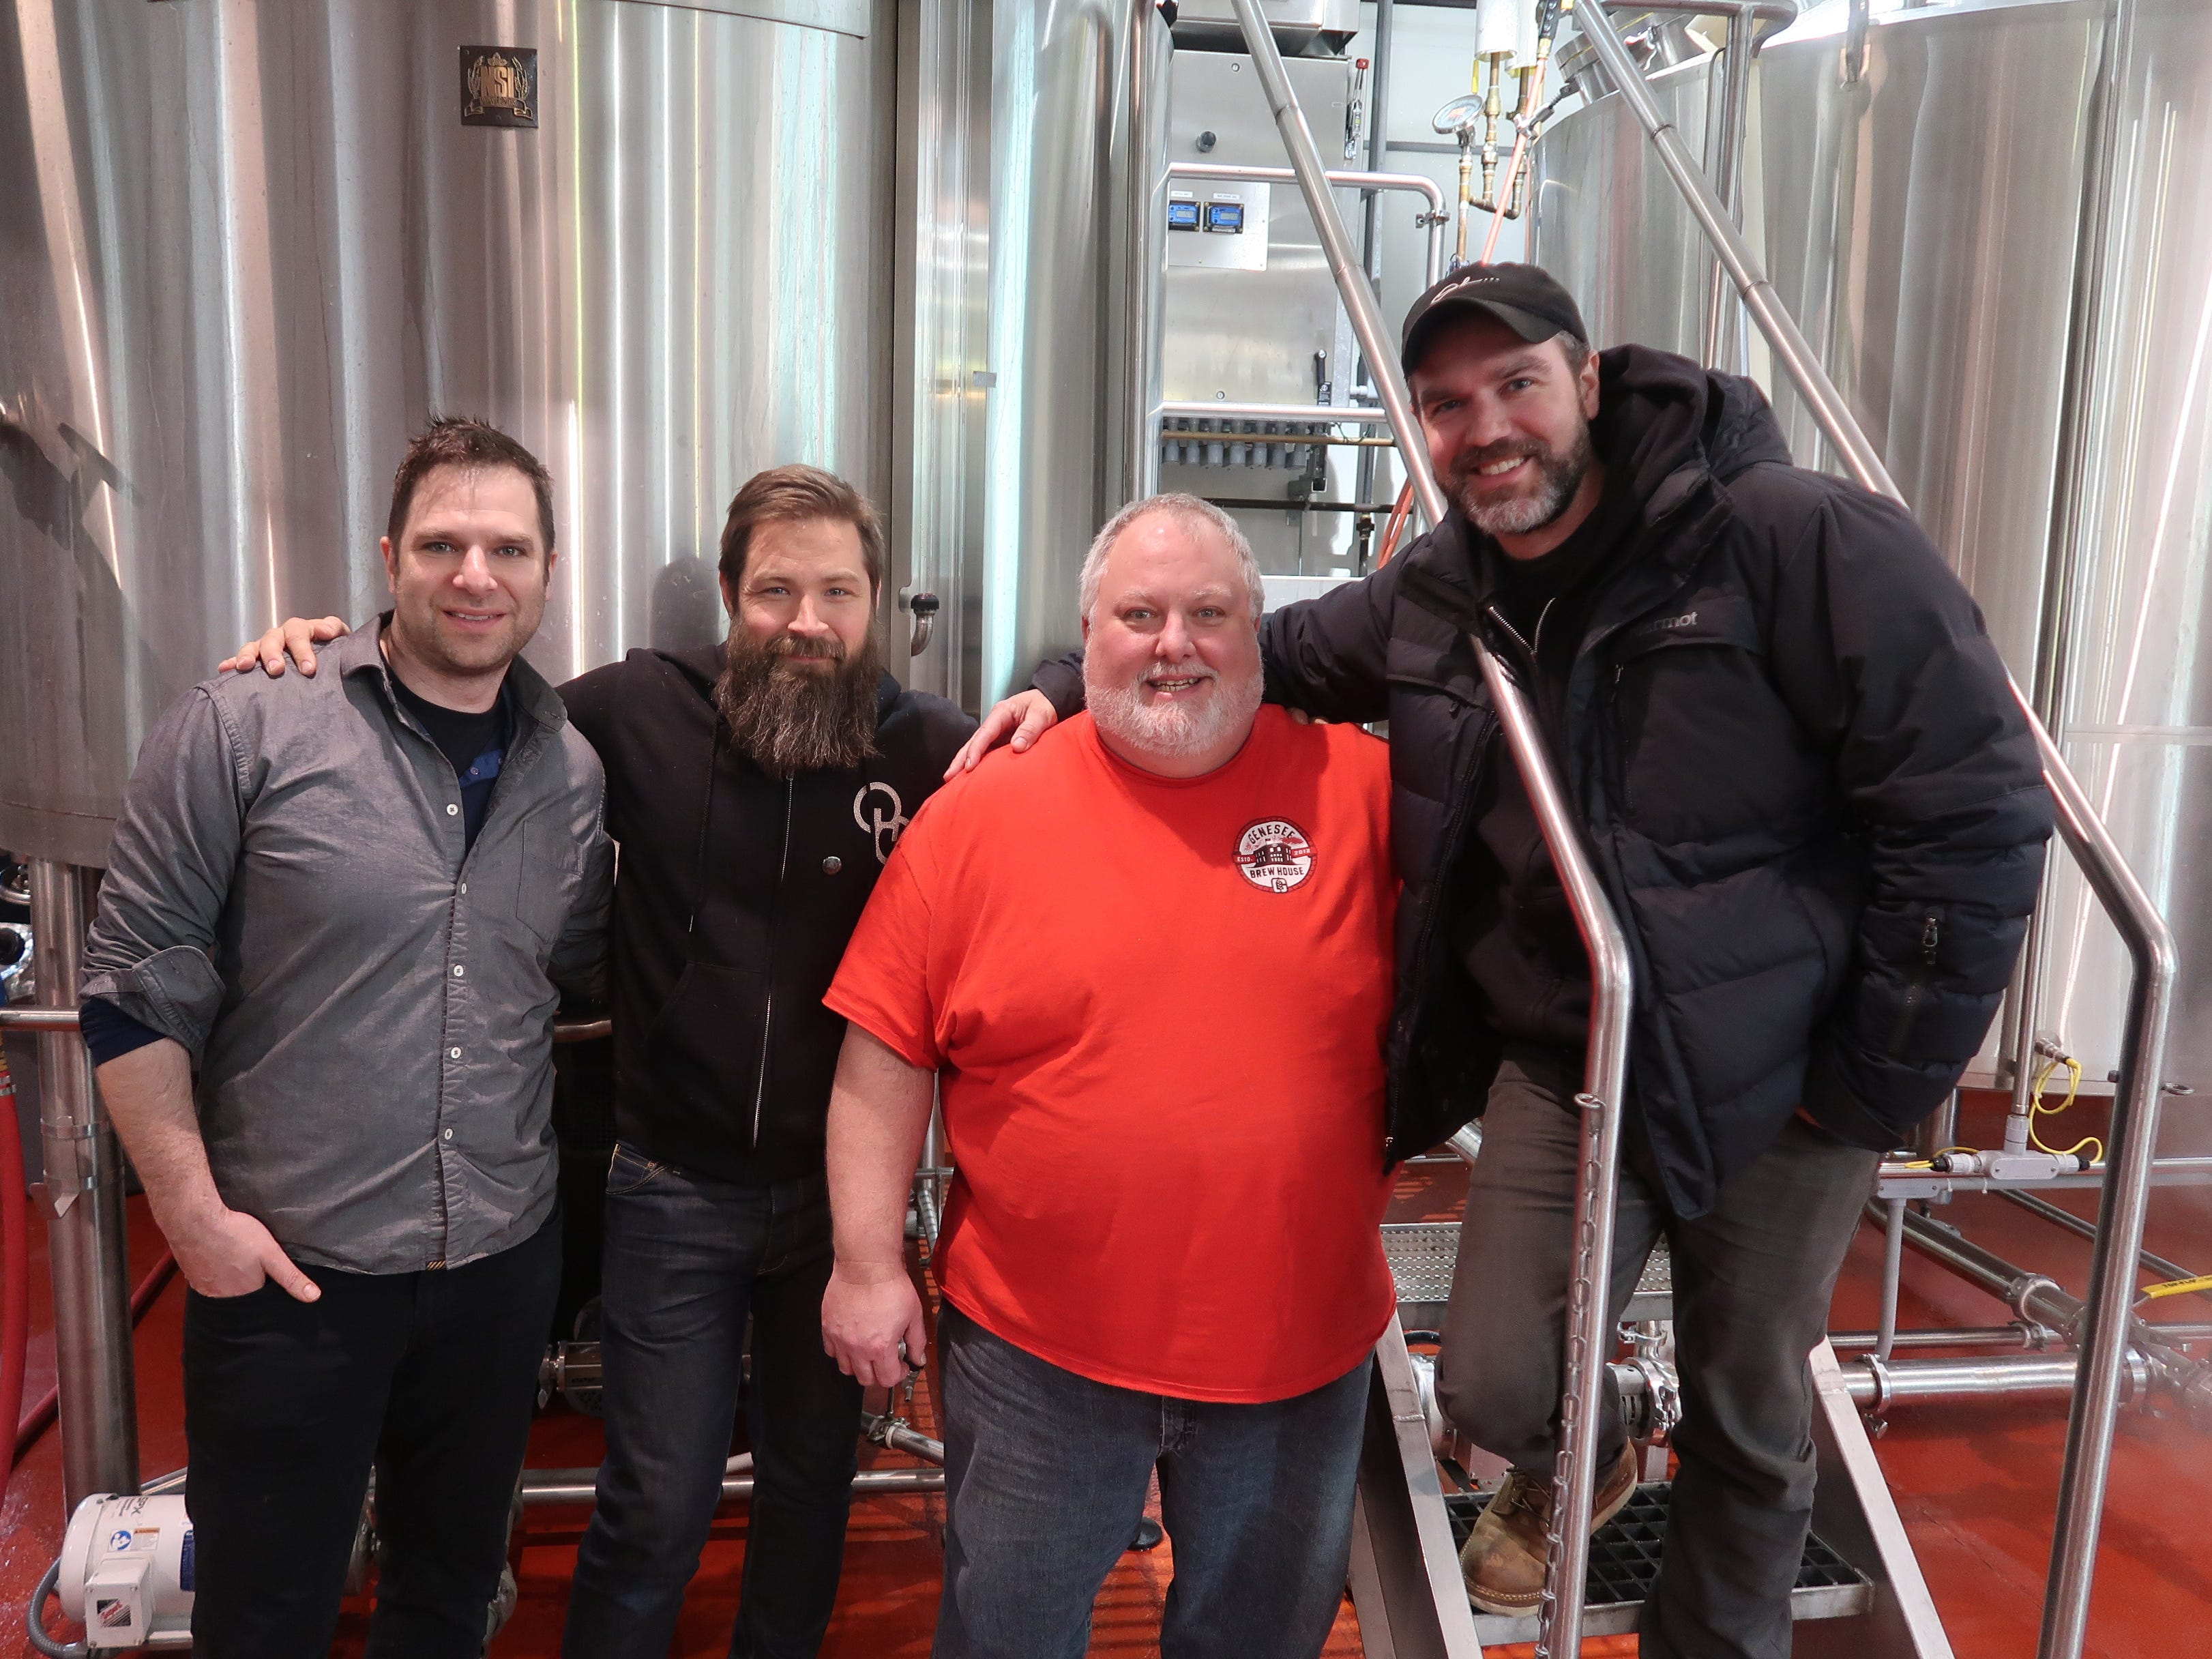 Other Half co-founders Andrew Burman, left, Sam Richardson, second from left, and Matt Monahan, right, with Genesee Brew House brewmaster Dean Jones pose during the collaborative brew day. (Feb. 12, 2019)